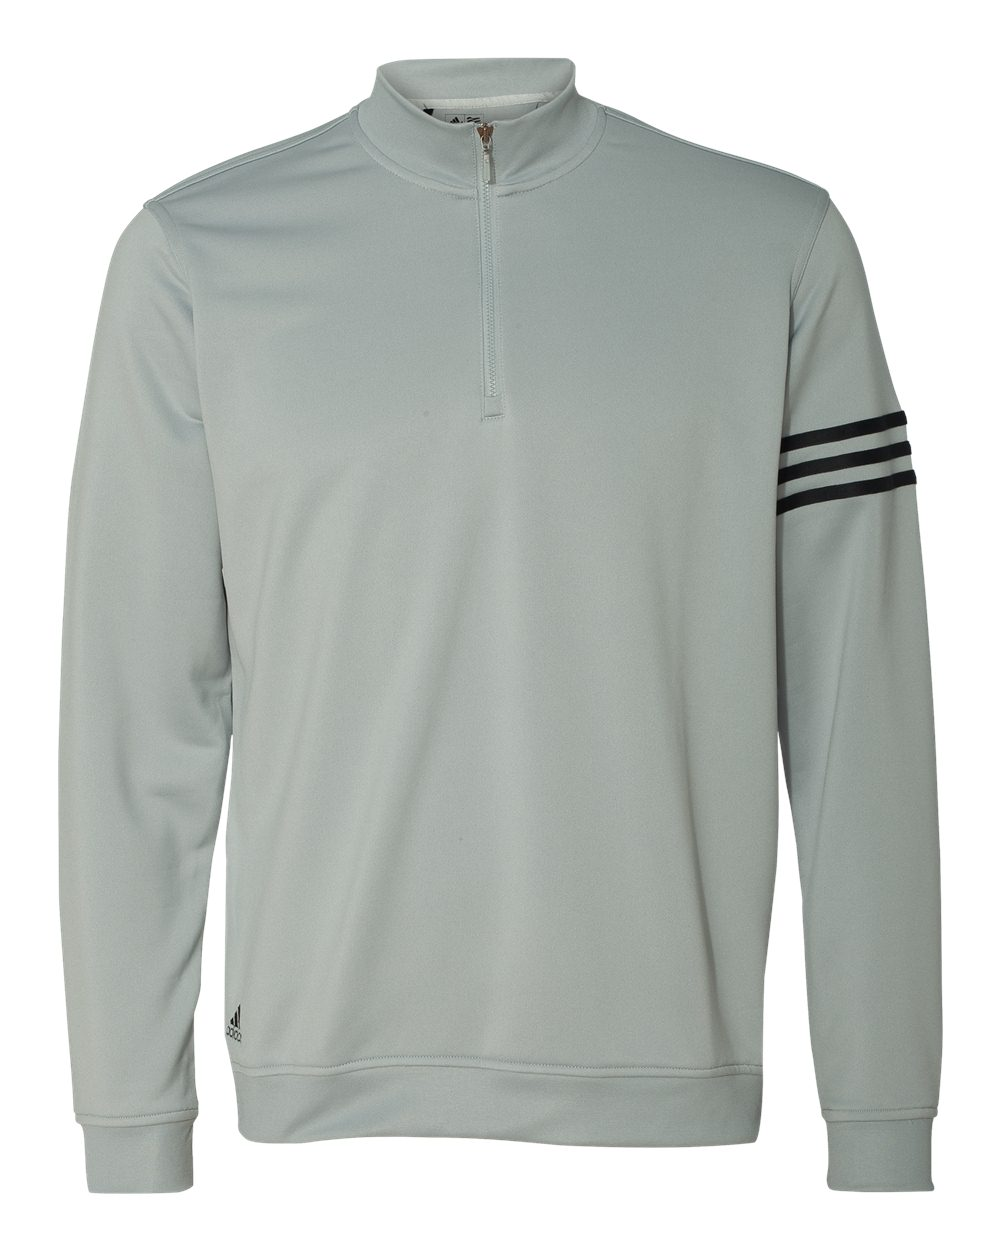 Adidas Golf Climalite French Terry Quarter Zip Pullover A190